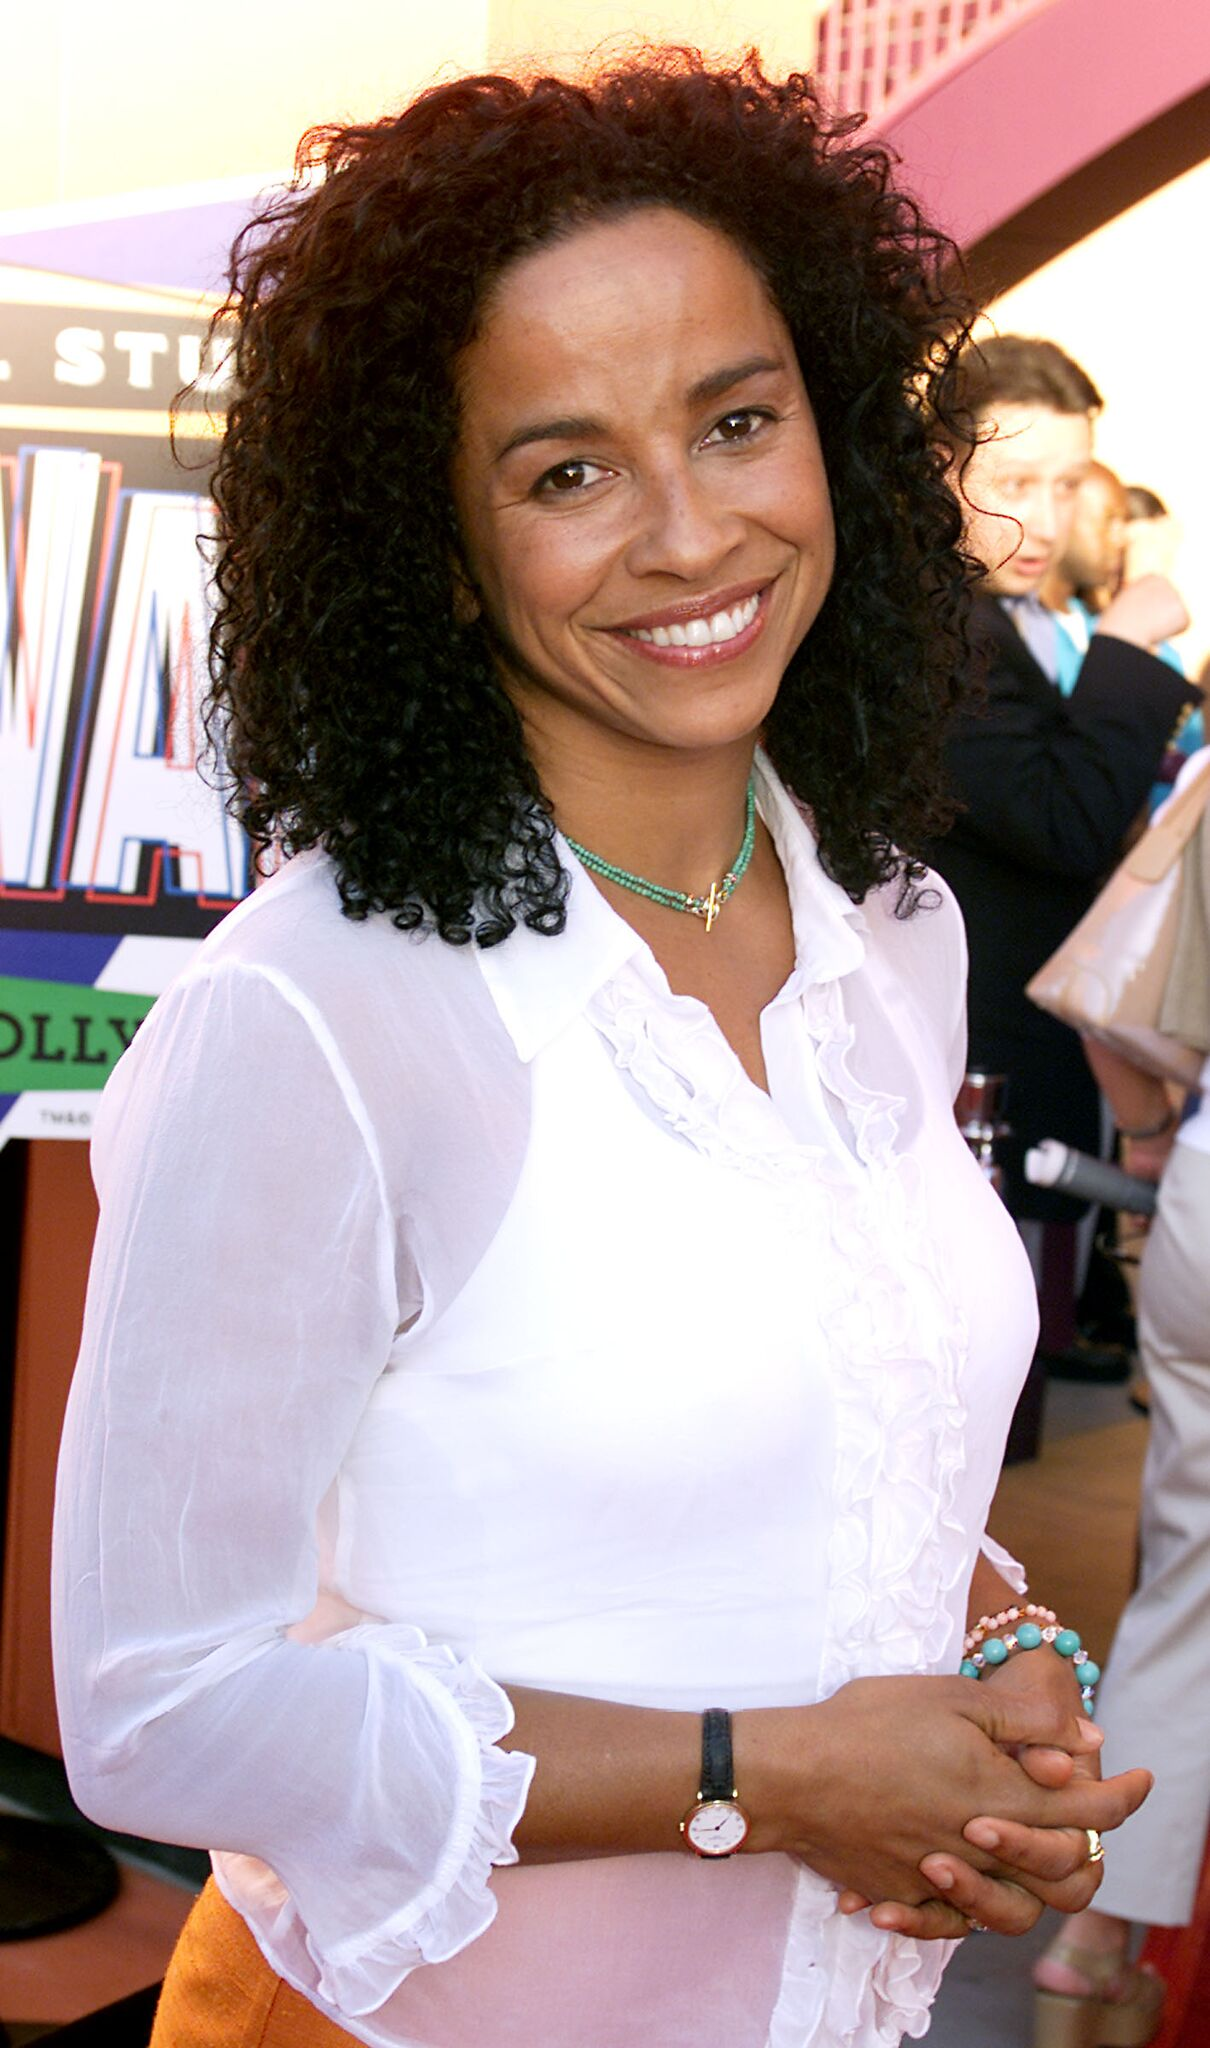 Rae Dawn Chong at NBC's party held for the Television Critics Association. The party was held at Jillians at Universal City Walk in Los Angeles, Ca. | Photo: Getty Images